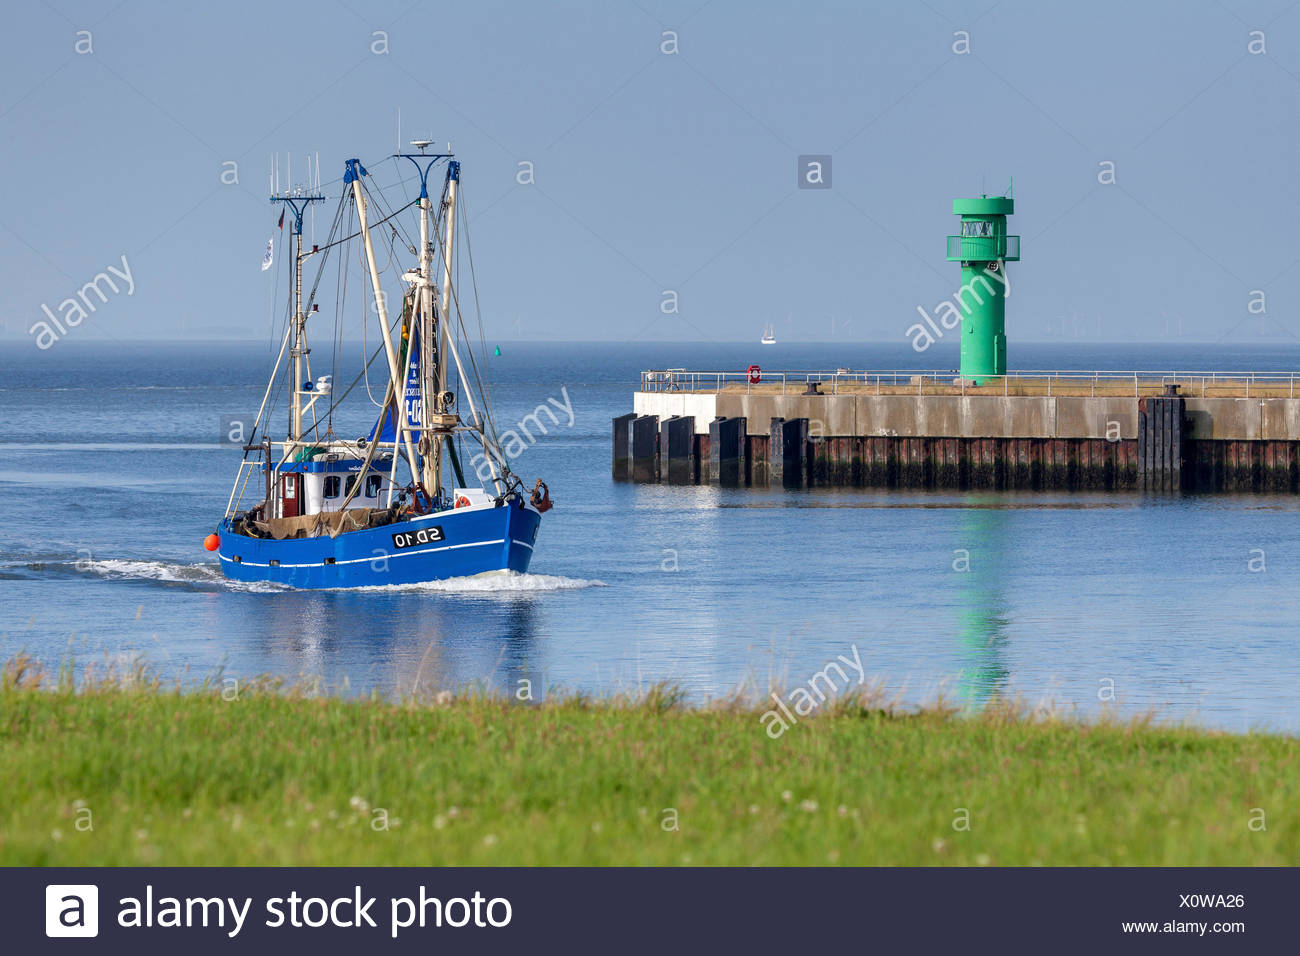 Crab cutters with the port entrance, Büsum, Ditmarsh, Schleswig - Holstein, North Germany, Germany - Stock Image